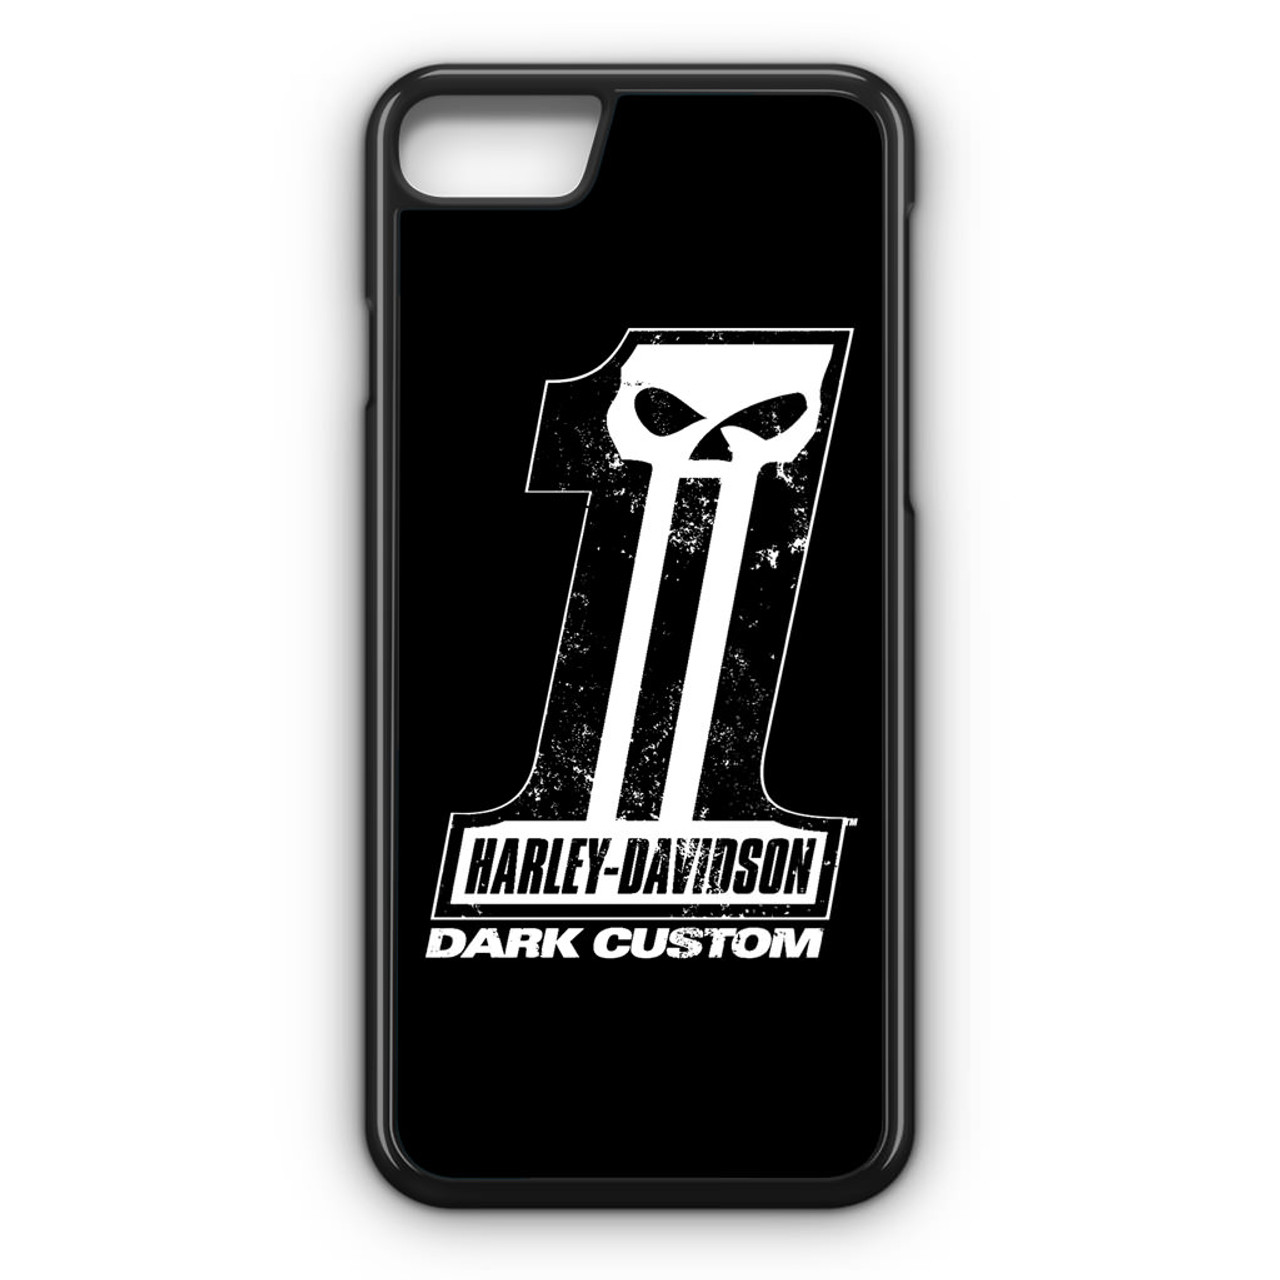 premium selection f4eac fa2d9 Harley Davidson Dark Custom iPhone 8 Case